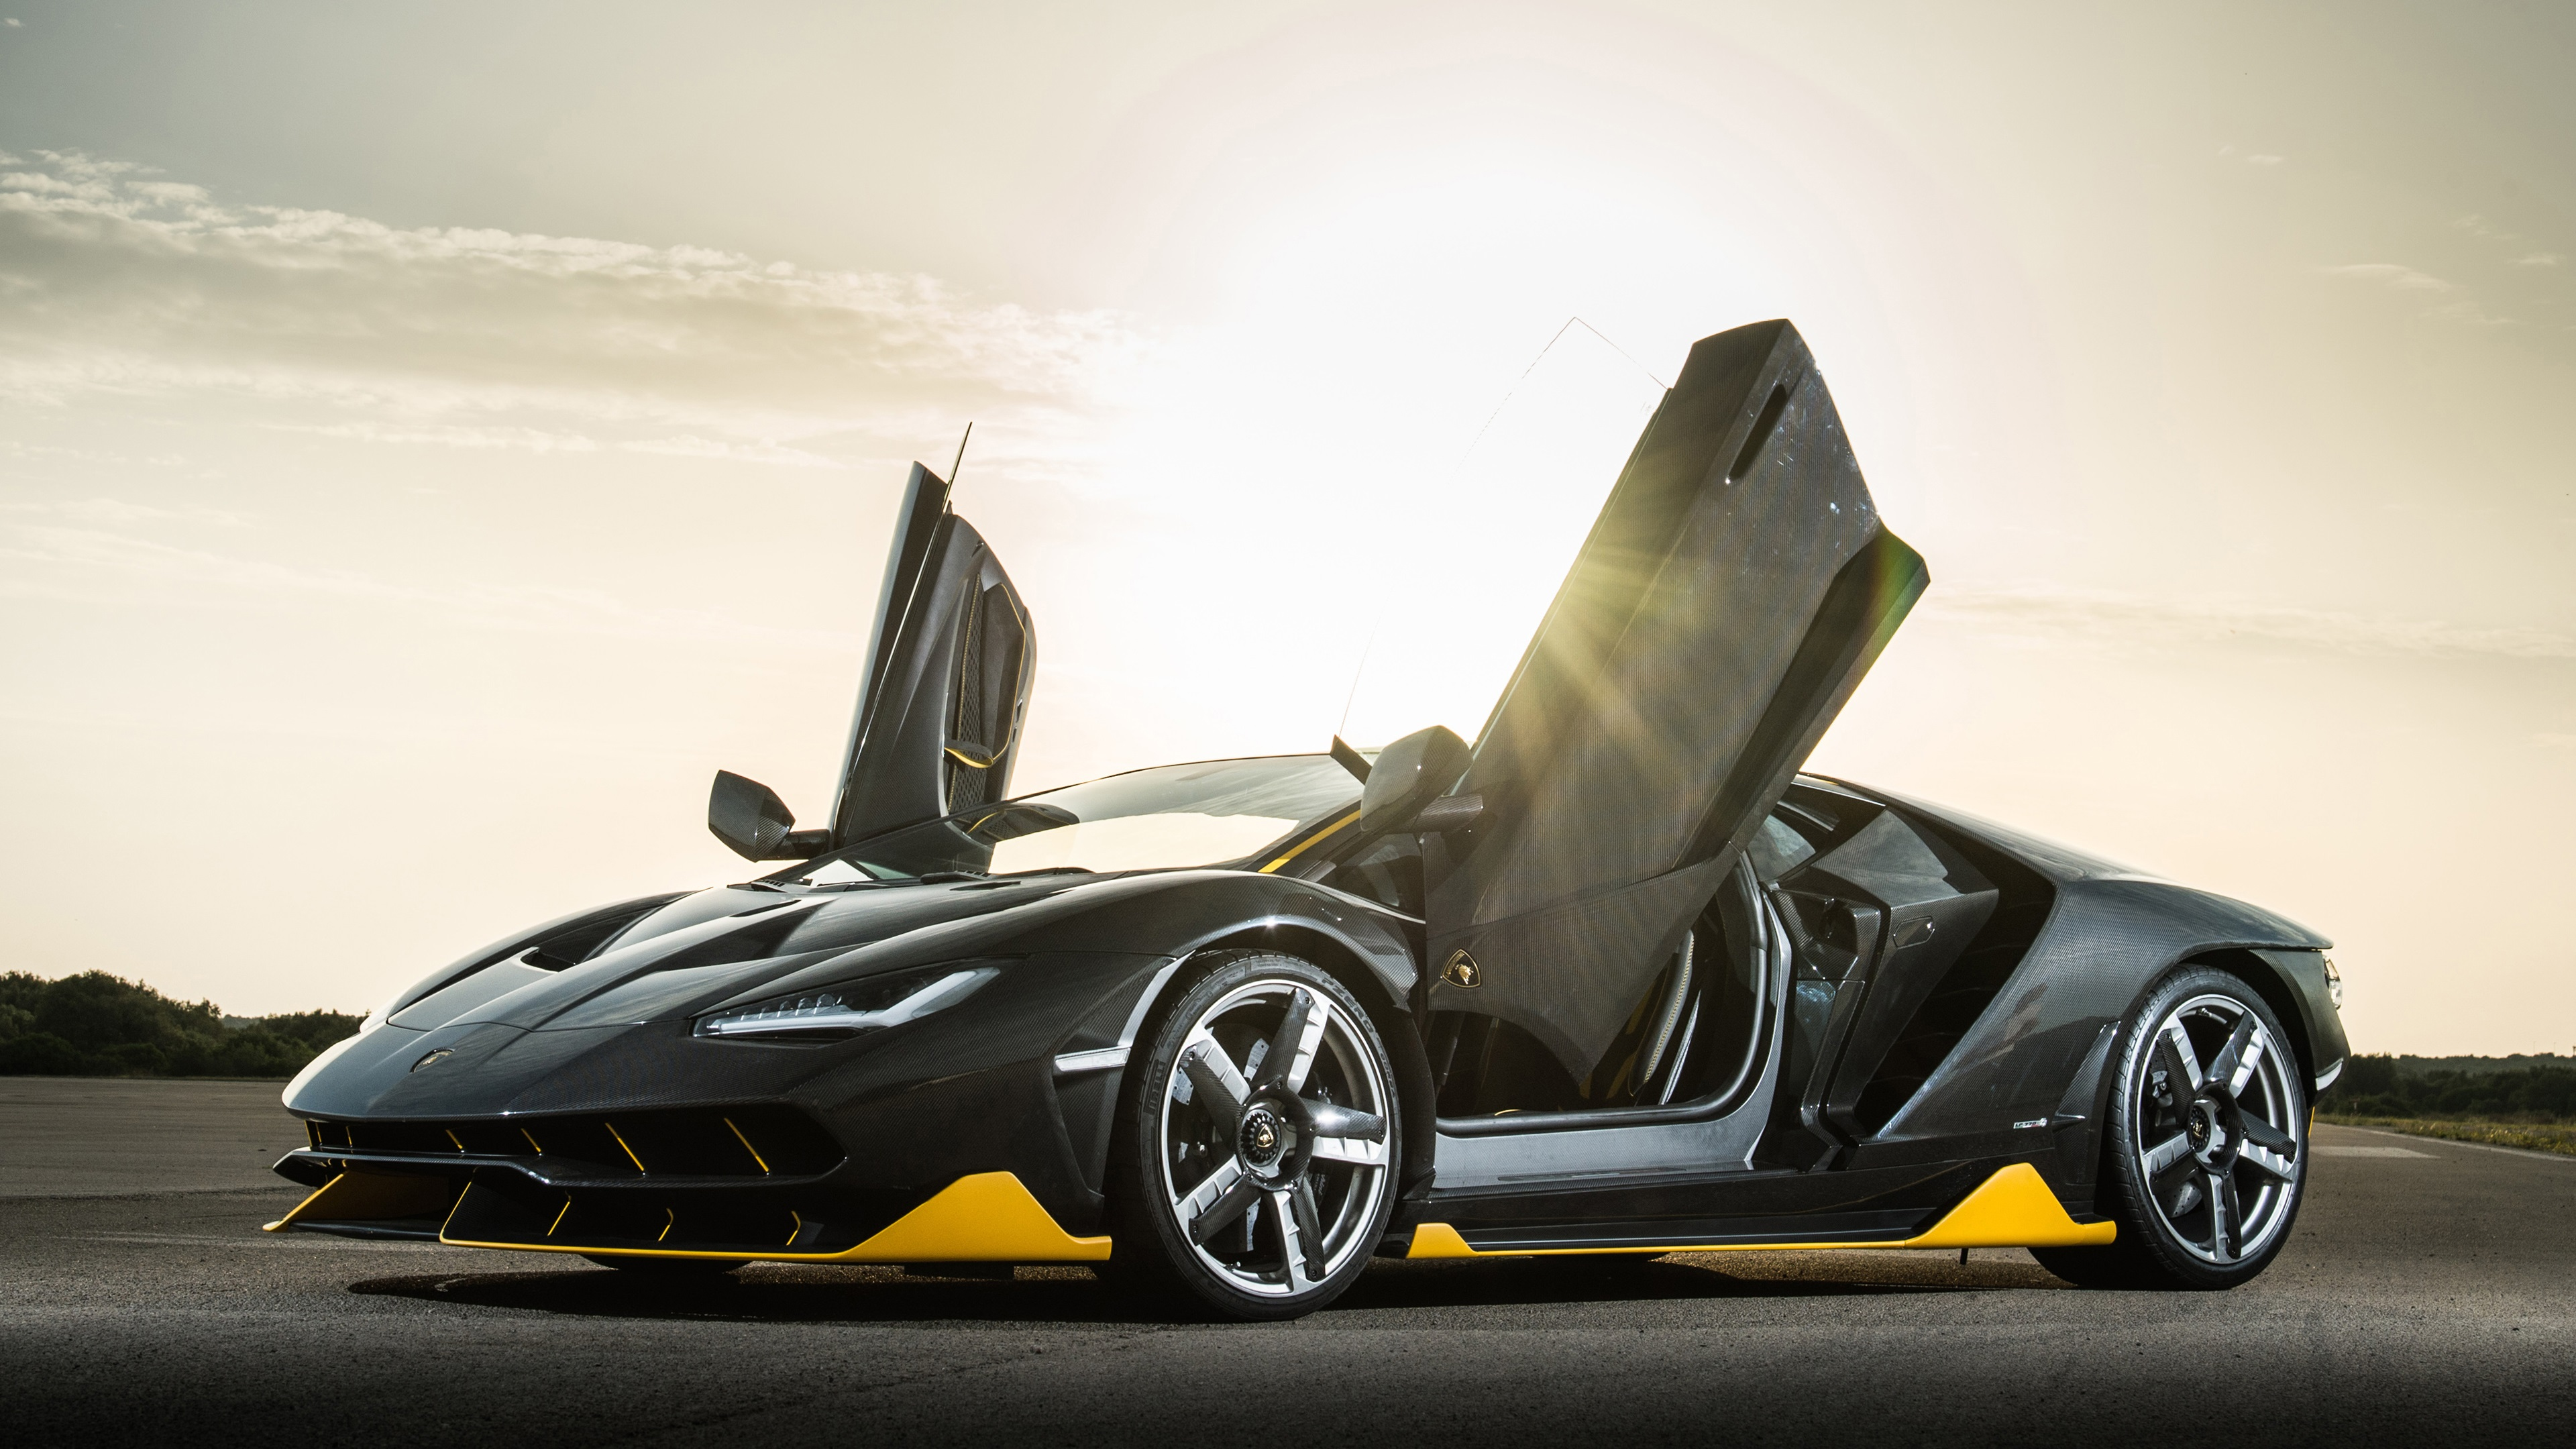 Wallpaper Lamborghini Centenario Black Coupe Doors Opened Sun Rays